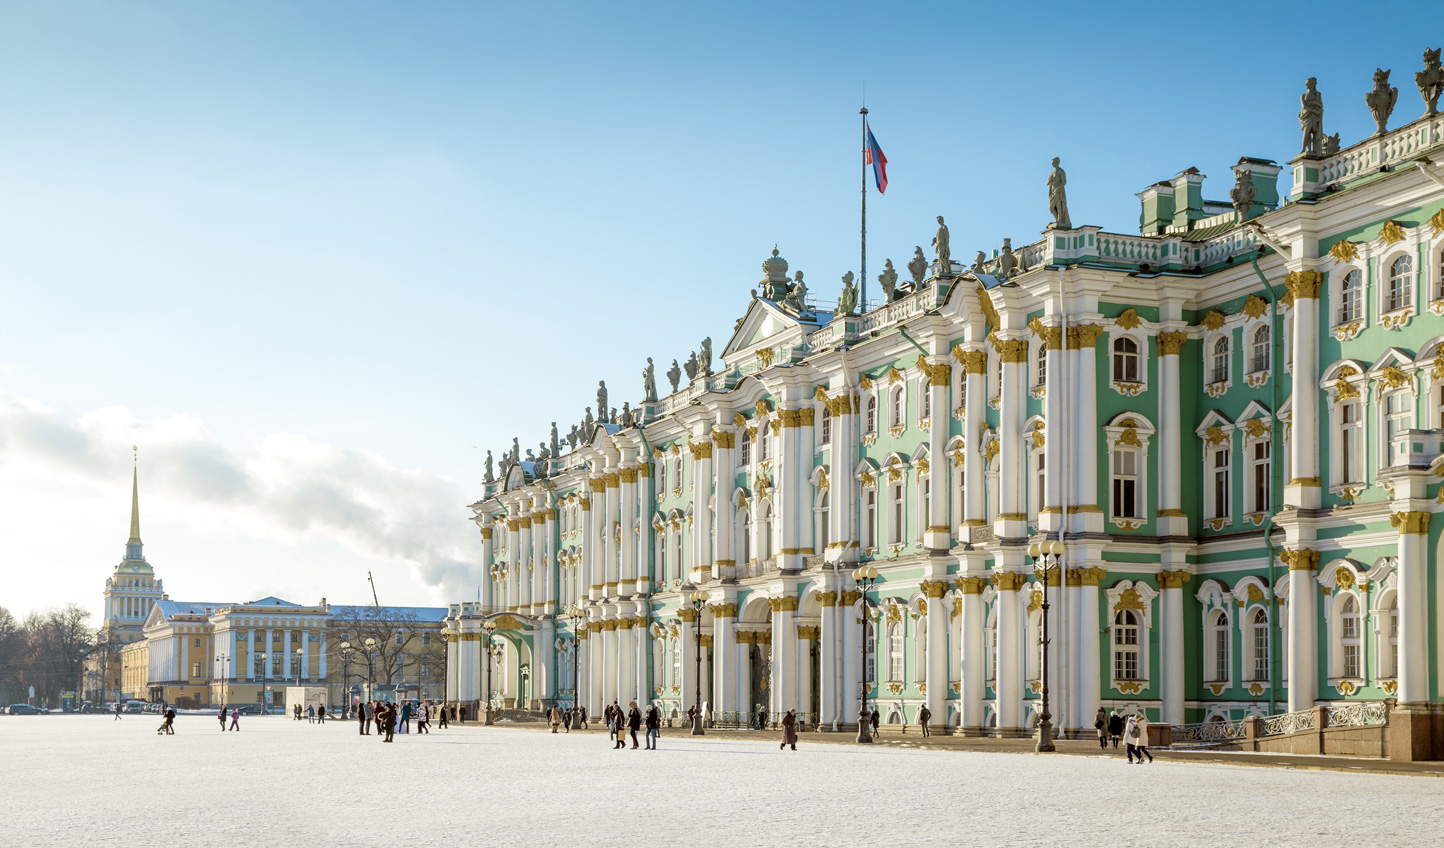 Spend an hour or more taking in the exhibits of the Hermitage Museum at the Winter Palace